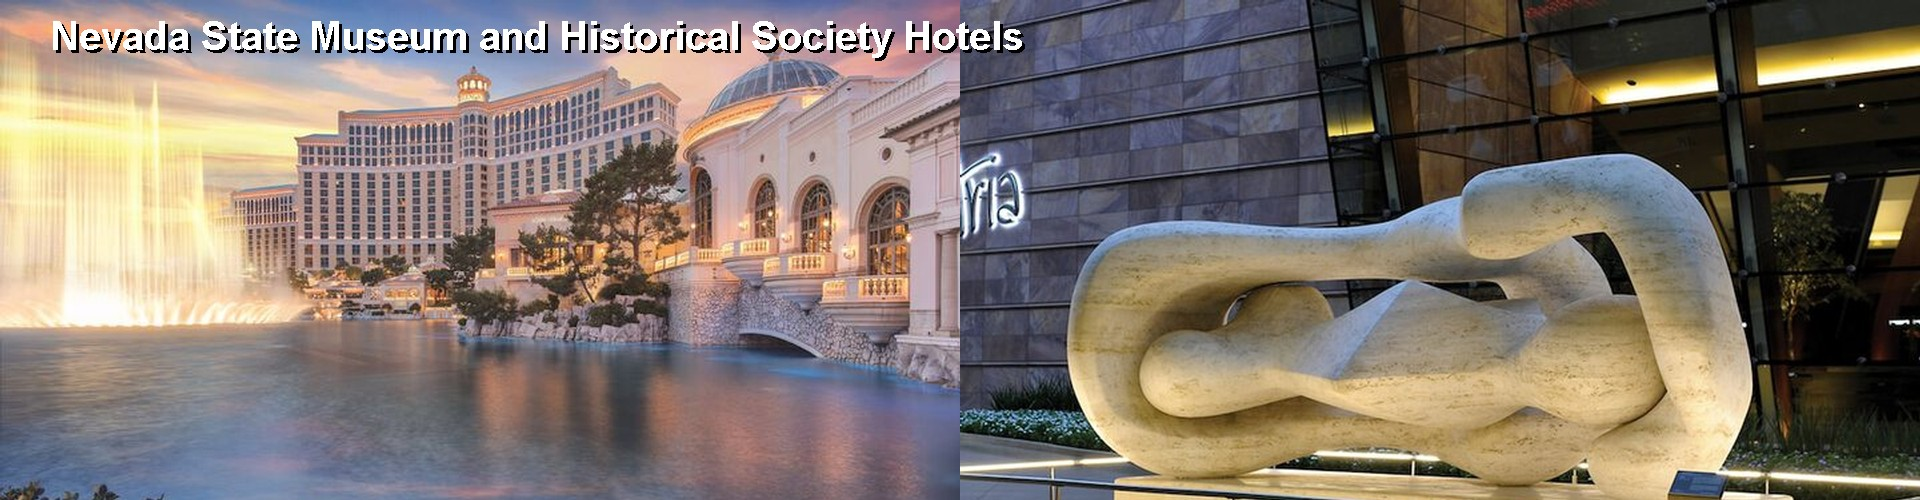 5 Best Hotels near Nevada State Museum and Historical Society